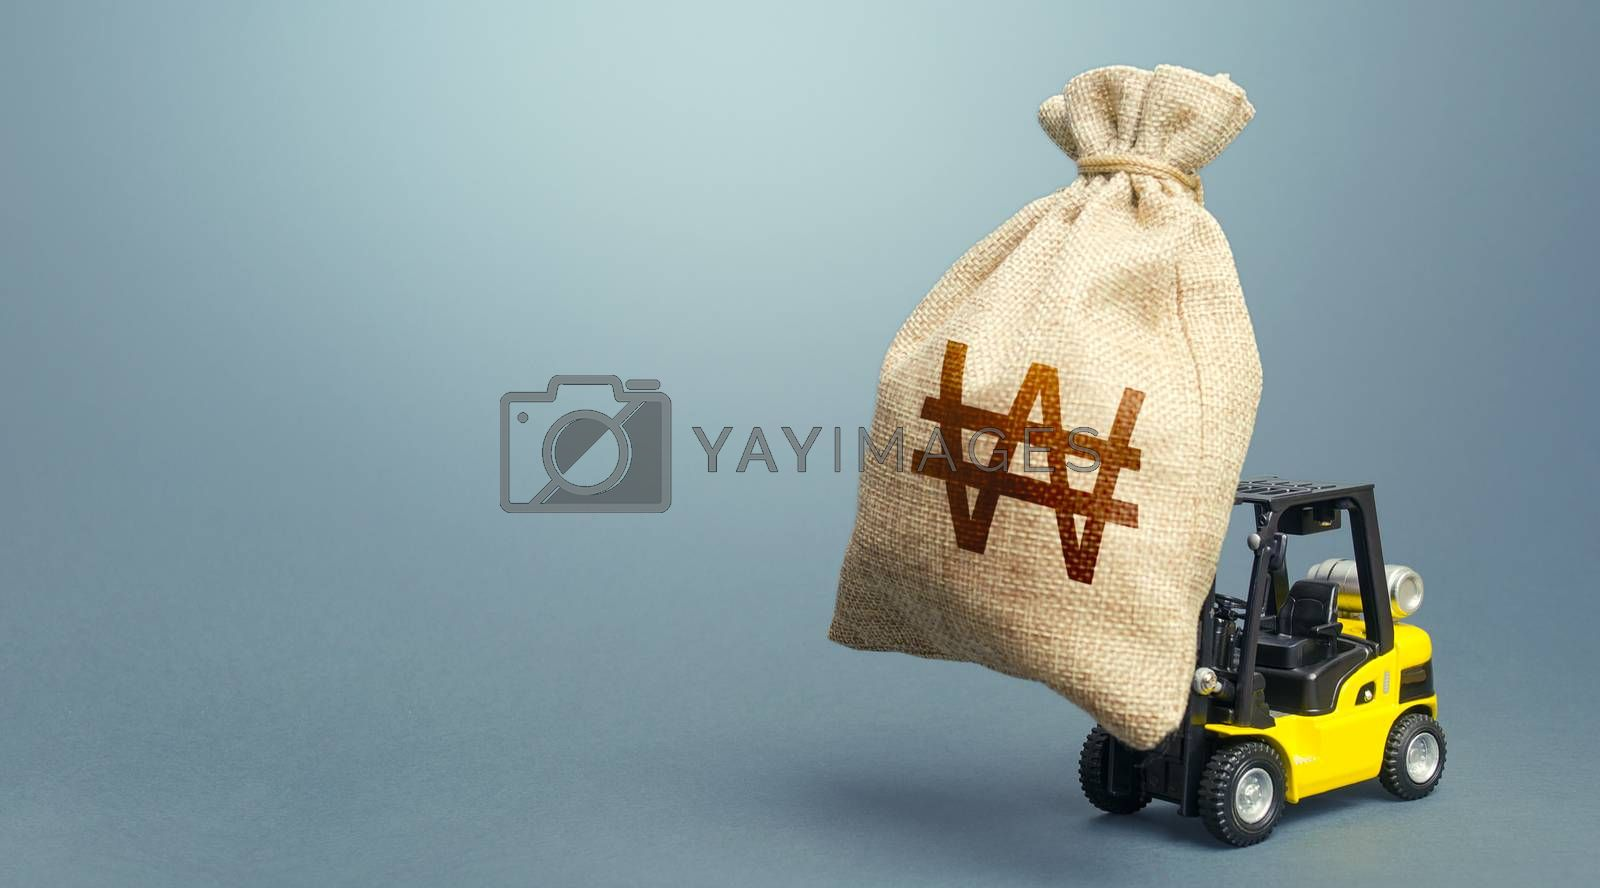 Forklift carrying a south korean won money bag. Strongest financial assistance, business support. Stimulating economy. Borrowing on capital market. Subsidies soft loans. Anti-crisis budget.